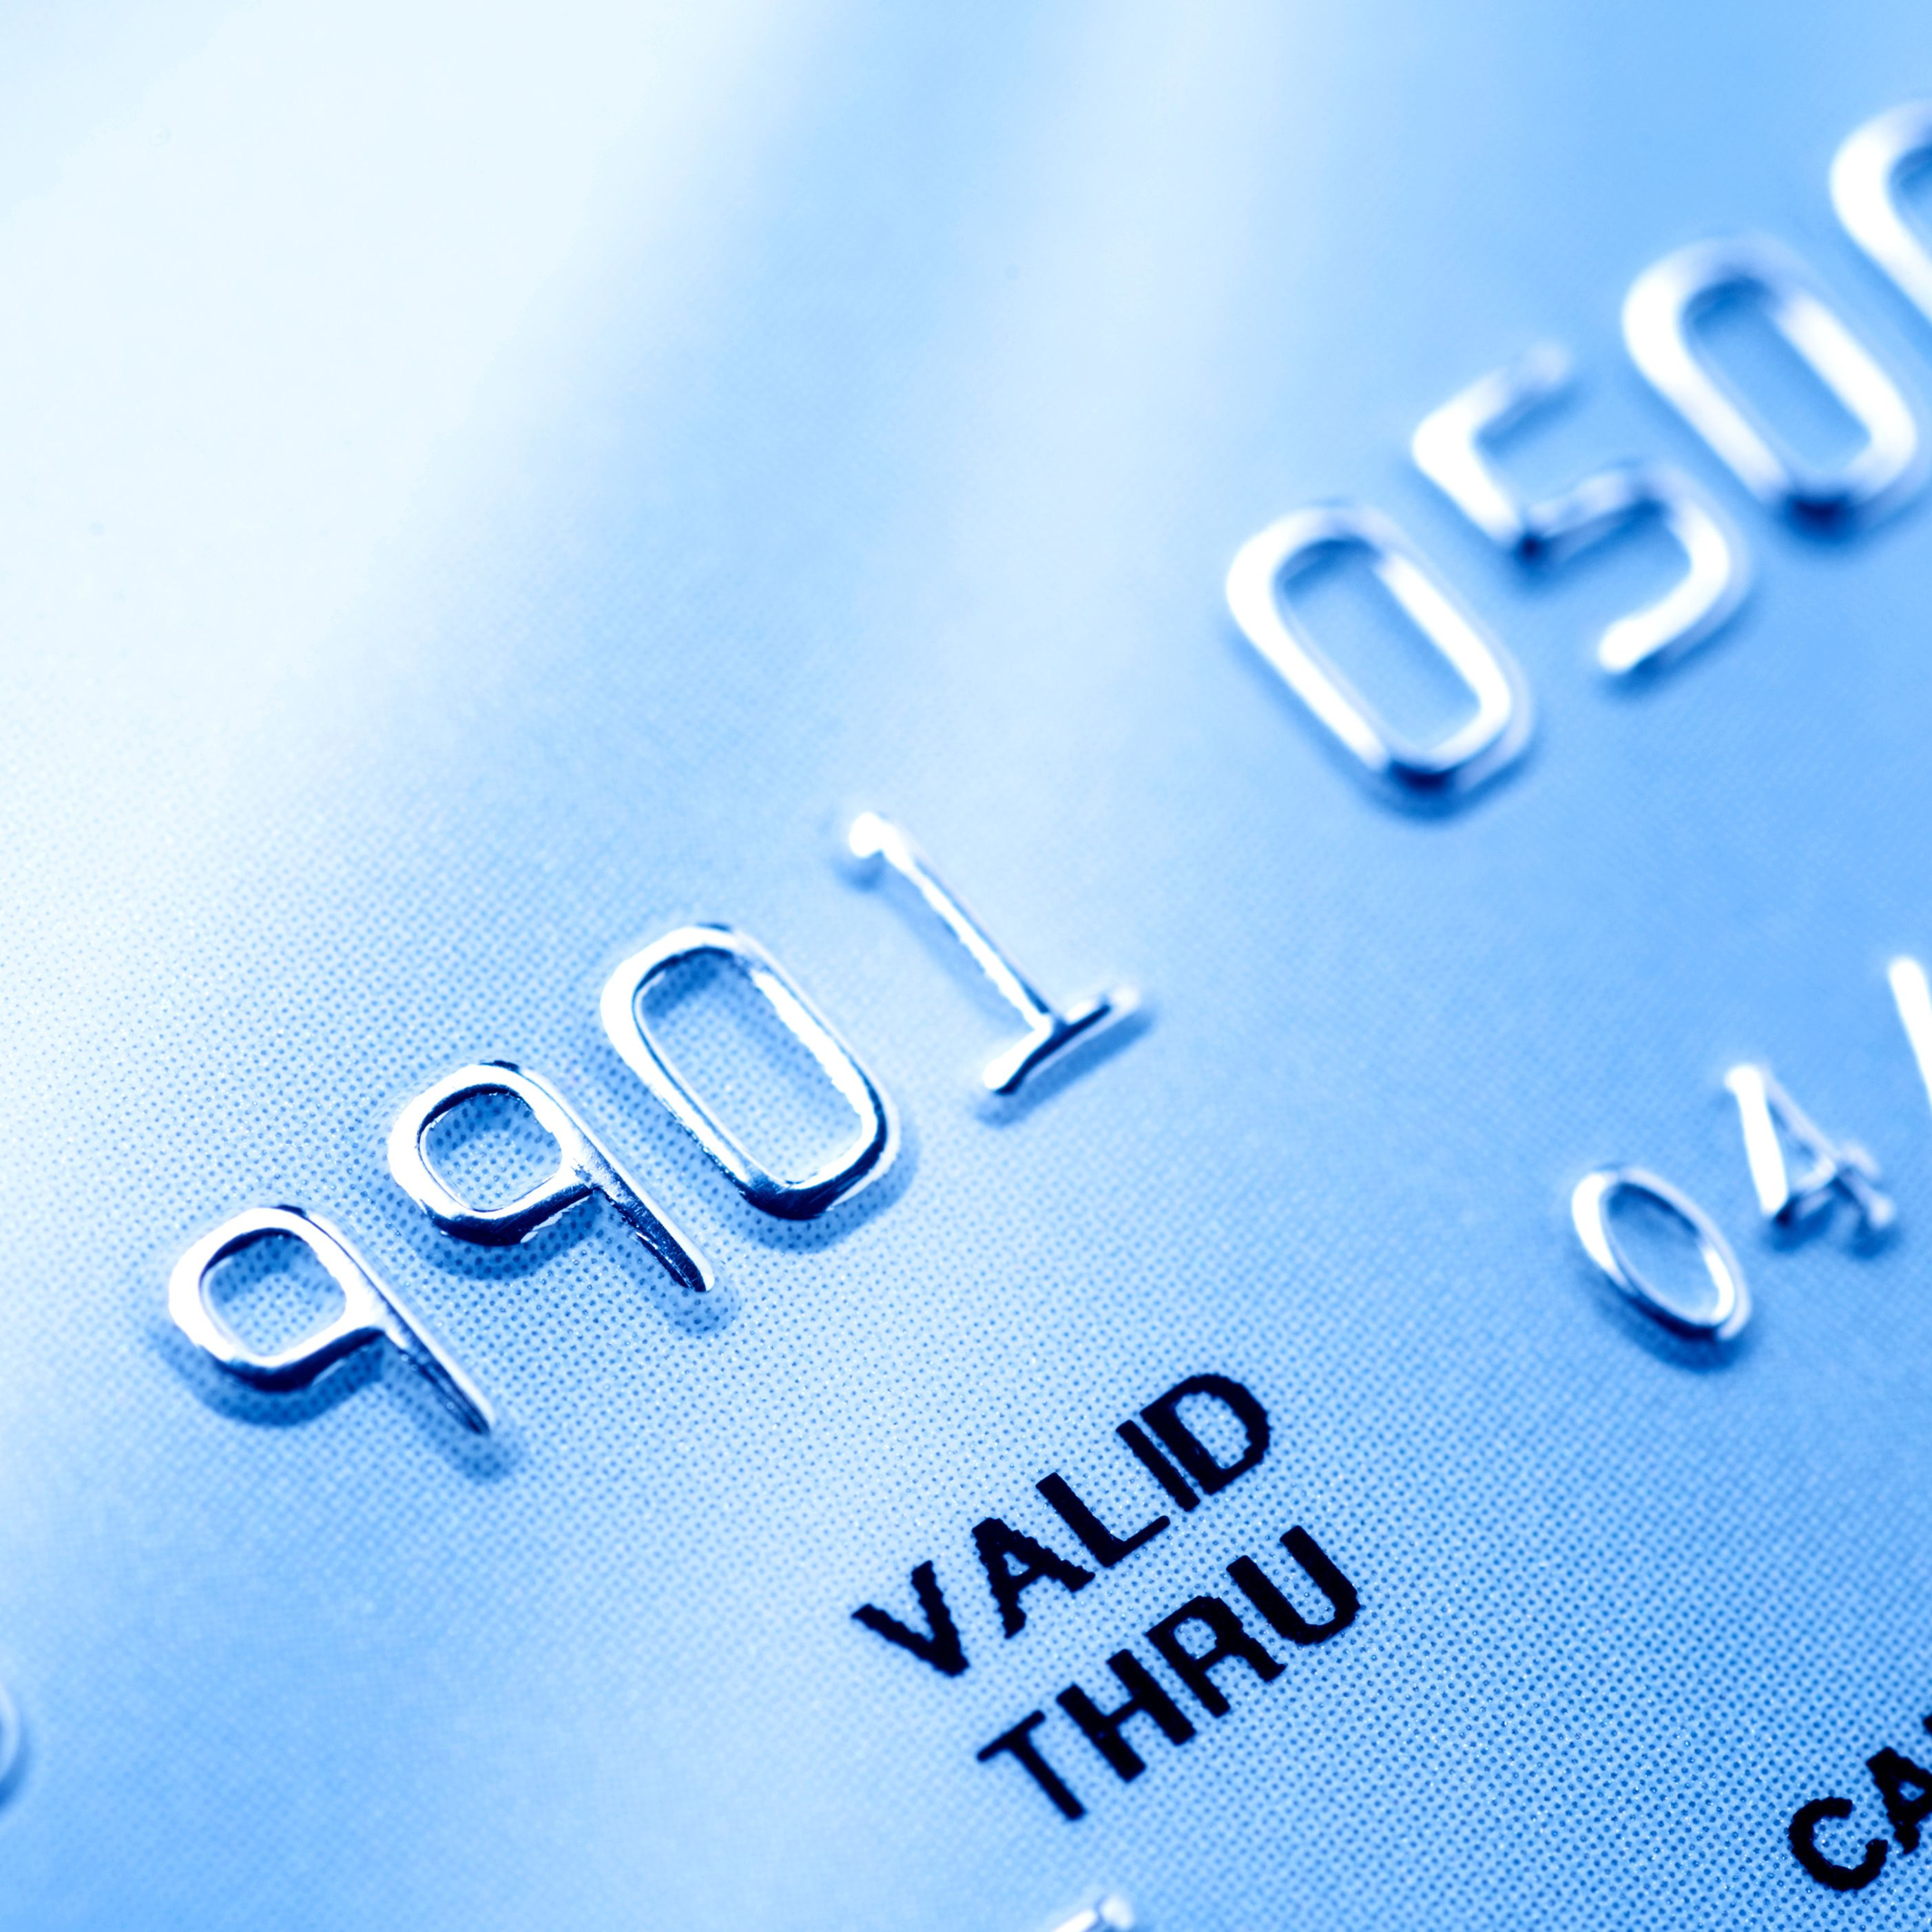 Find the Best Credit Cards Based on Your Credit Score